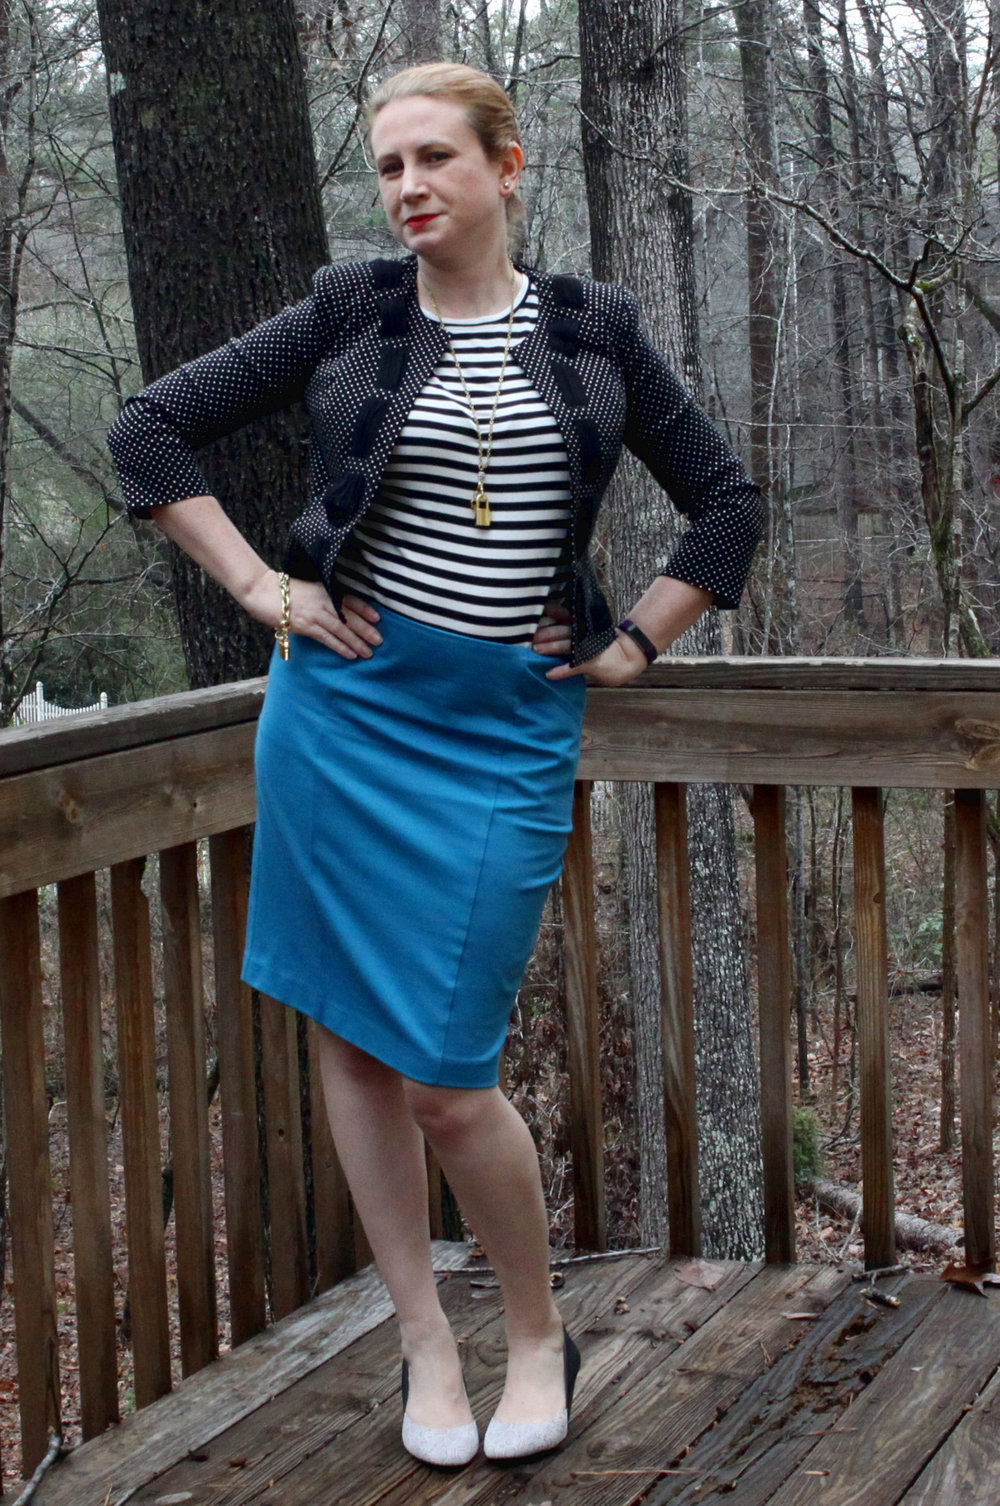 Sigourney skirt from cabi Fall 2016. Bistro Tee, Dot Jacket, Lock & Key Necklace, and Lock & Key Bracelet from cabi clothing Spring 2017. Shoes are from Stitch Fix.